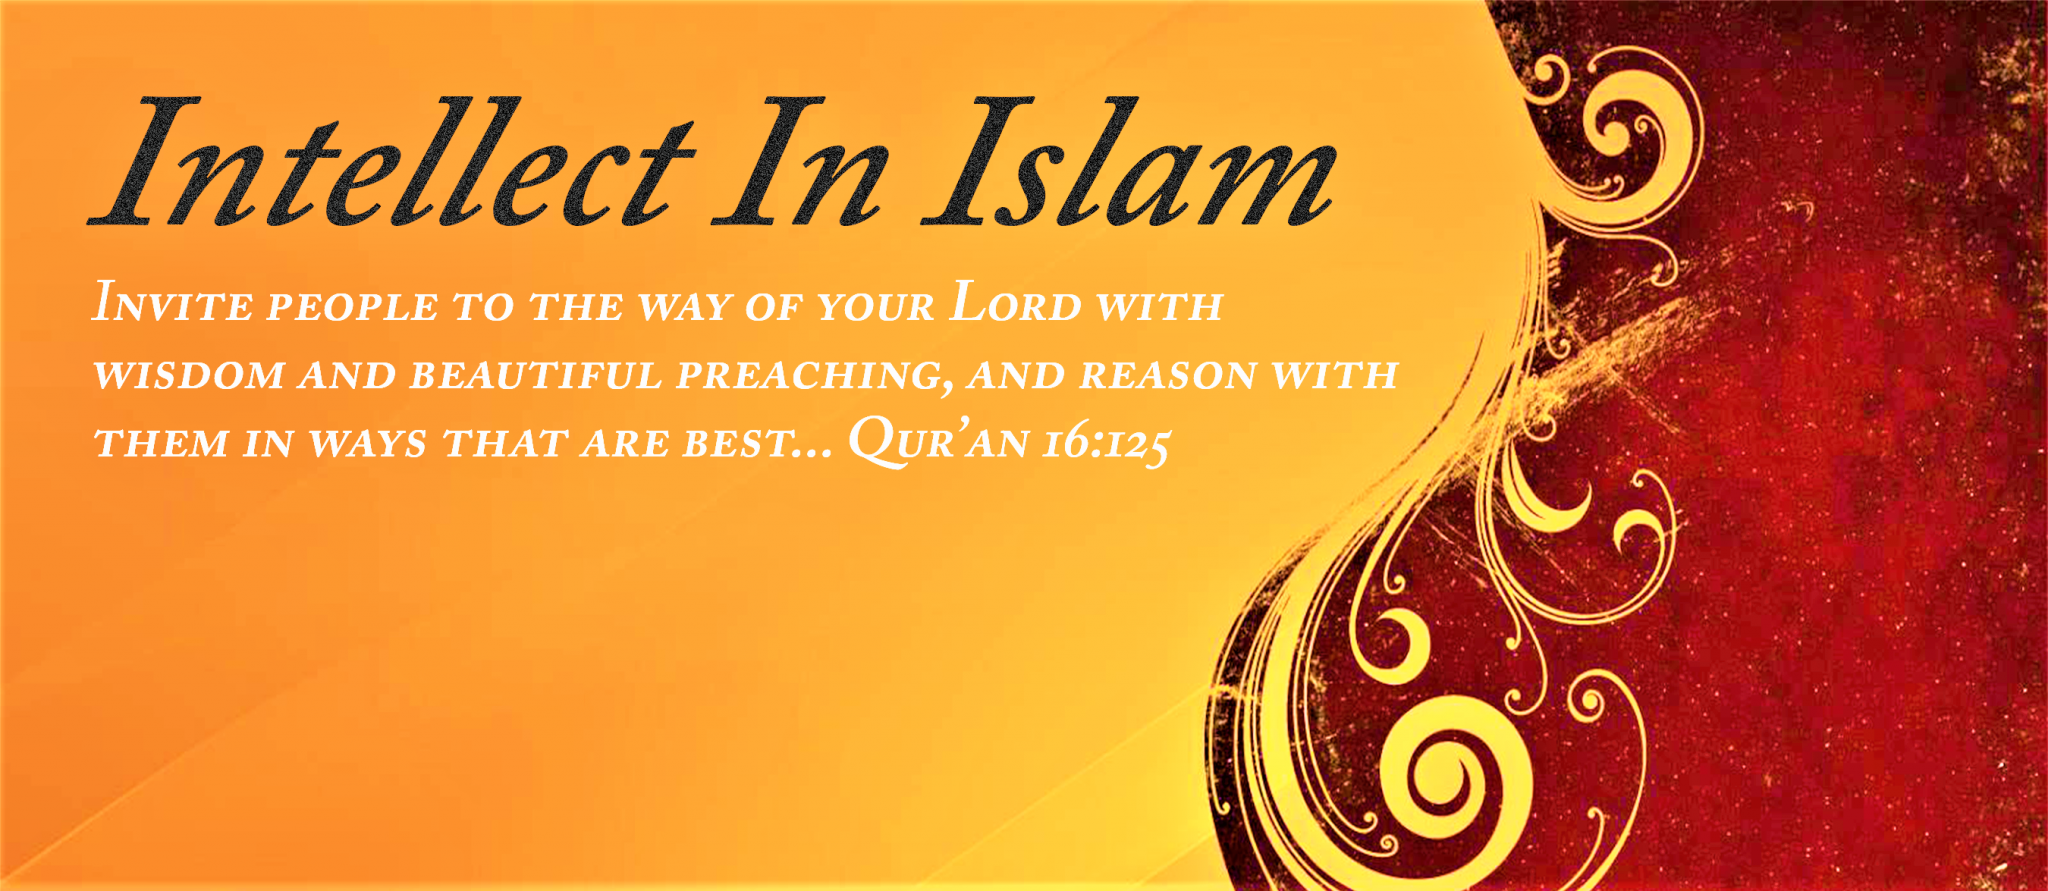 Intellect In Islam